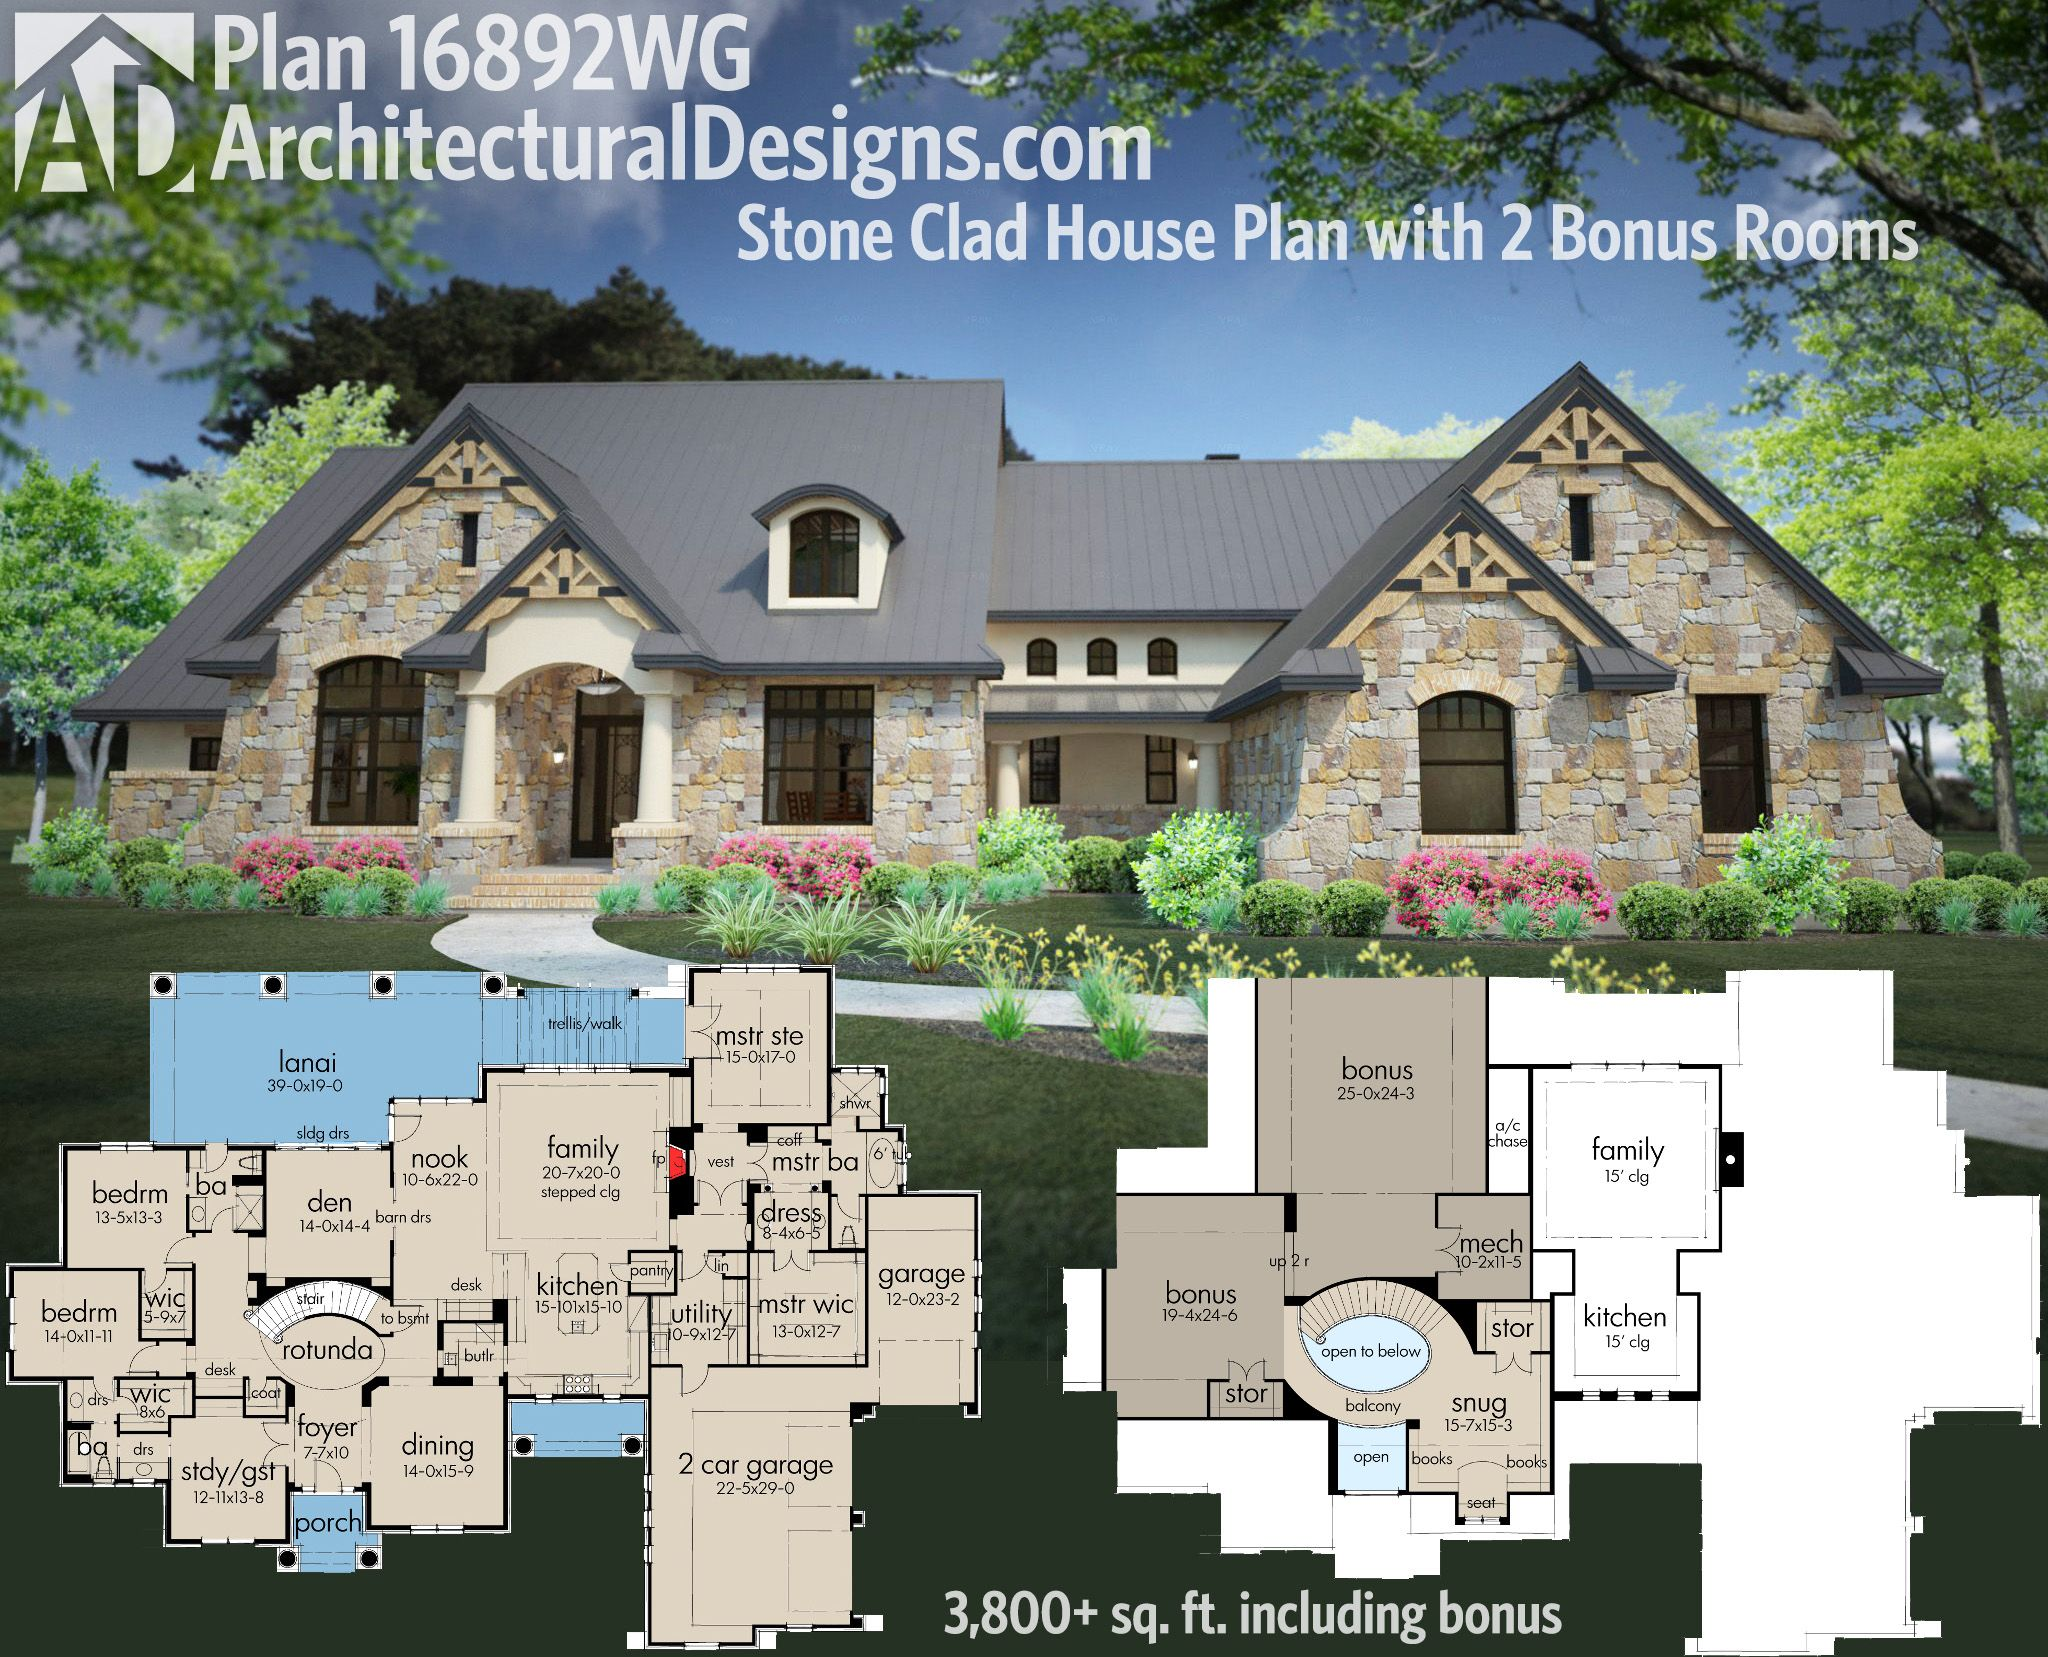 Architectural Designs Stone Clad House Plan 16892WG